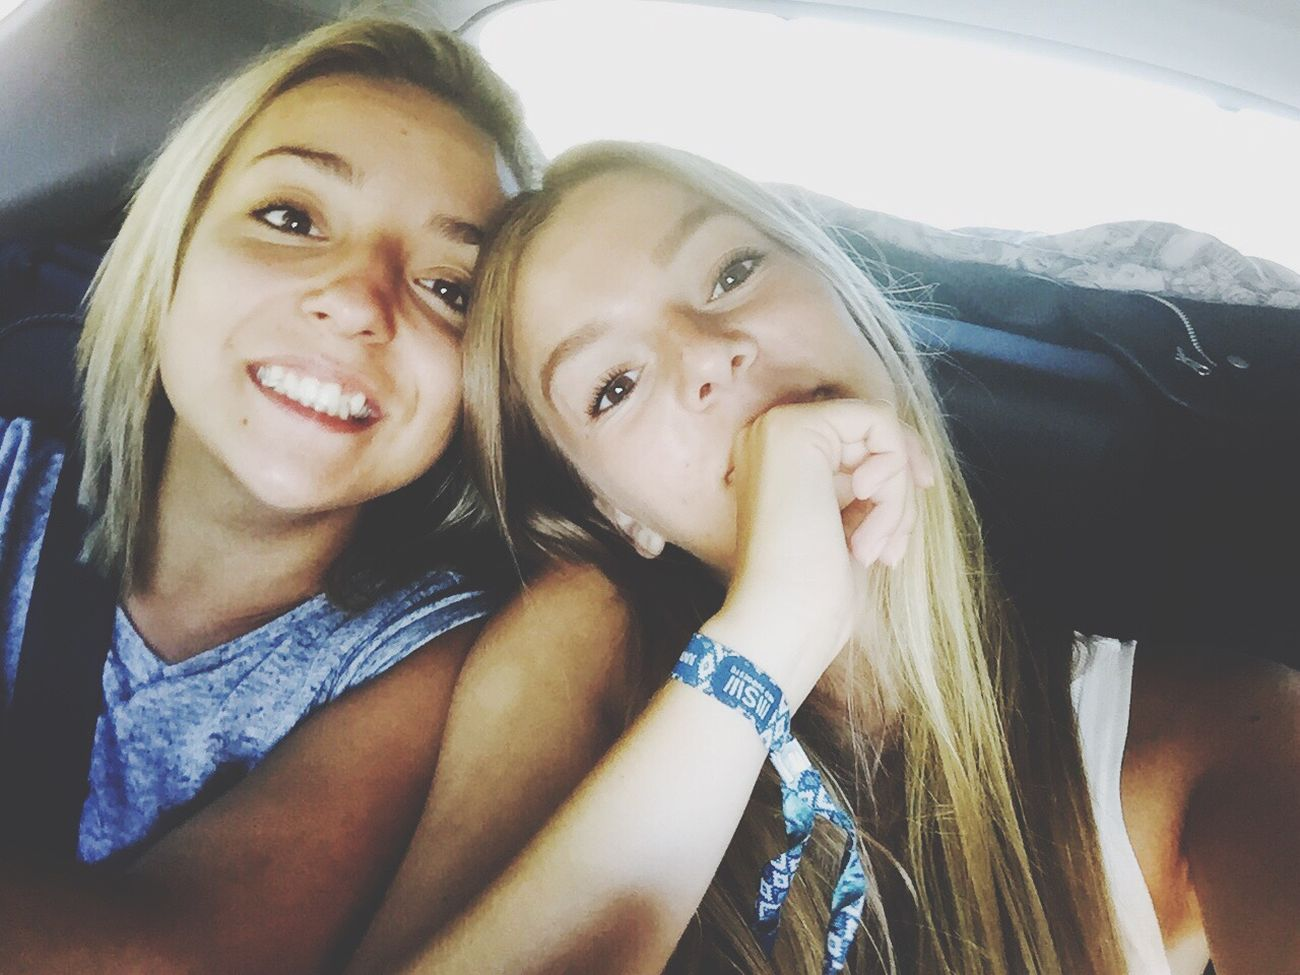 Bestsummer Obrigado Portugal Pombal Soamazing Beautiful Myfriend♥ MyLove❤ Thankyou Summer ☀ 2016😍 Perfect Such A Good Time Blonde Girl Sweet